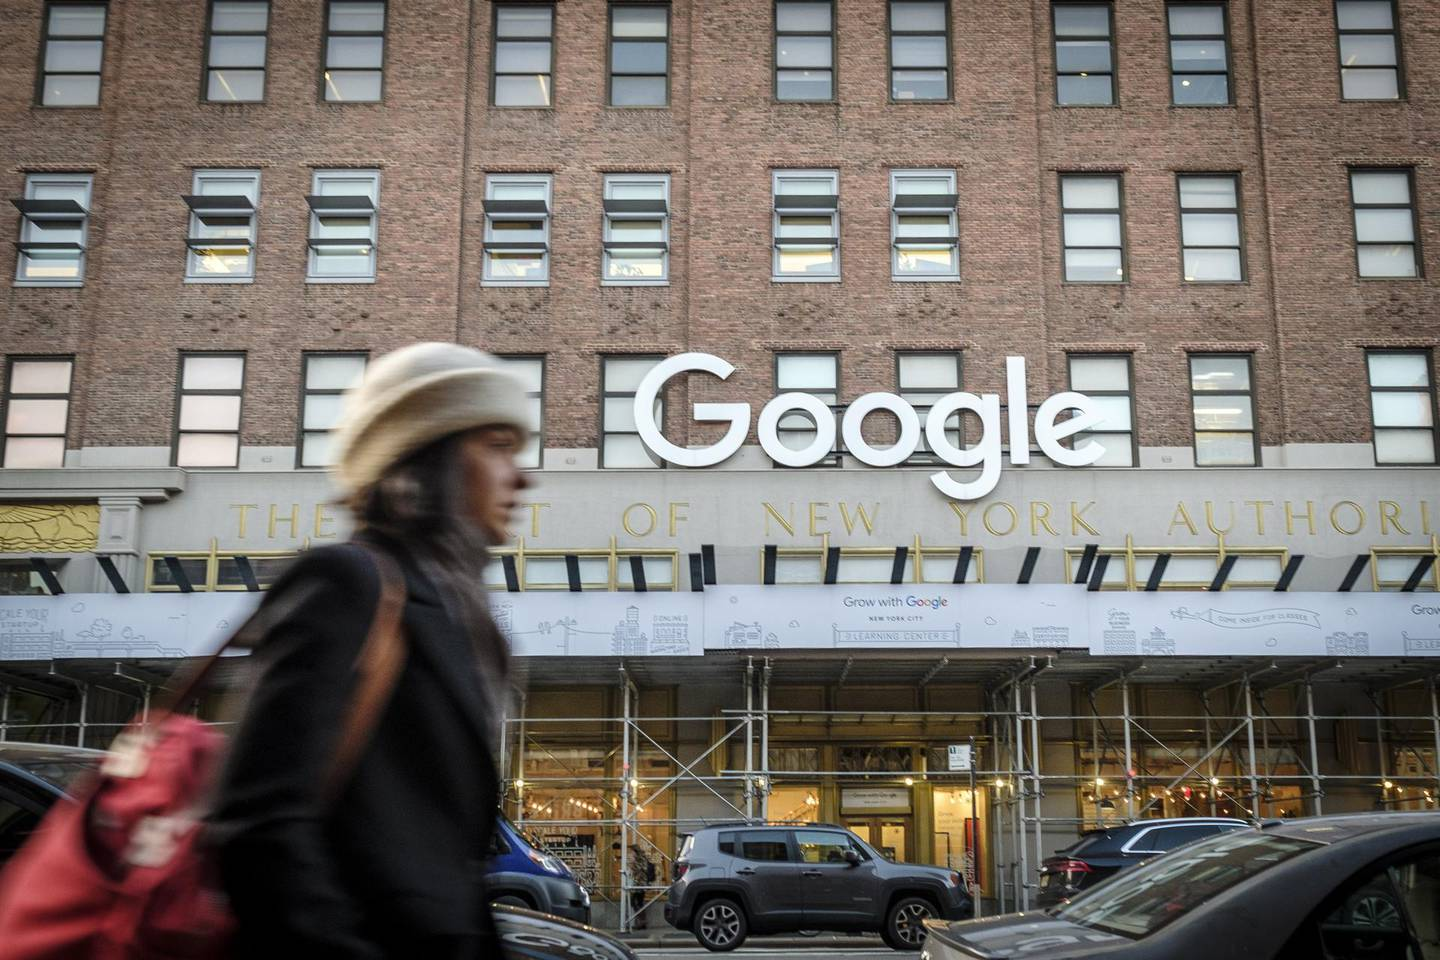 A pedestrian passes in front of Google headquarters in the Chelsea neighborhood of New York, U.S., on Monday, Jan. 6, 2020. The Alphabet Inc. unit Google has added thousands of jobs since it set up shop in the Chelsea neighborhood in 2006, and plans to add thousands more on Manhattan's west side. The company didn't take public subsidies, and has mushroomed in New York without provoking much ire. Photographer: Christopher Occhicone/Bloomberg